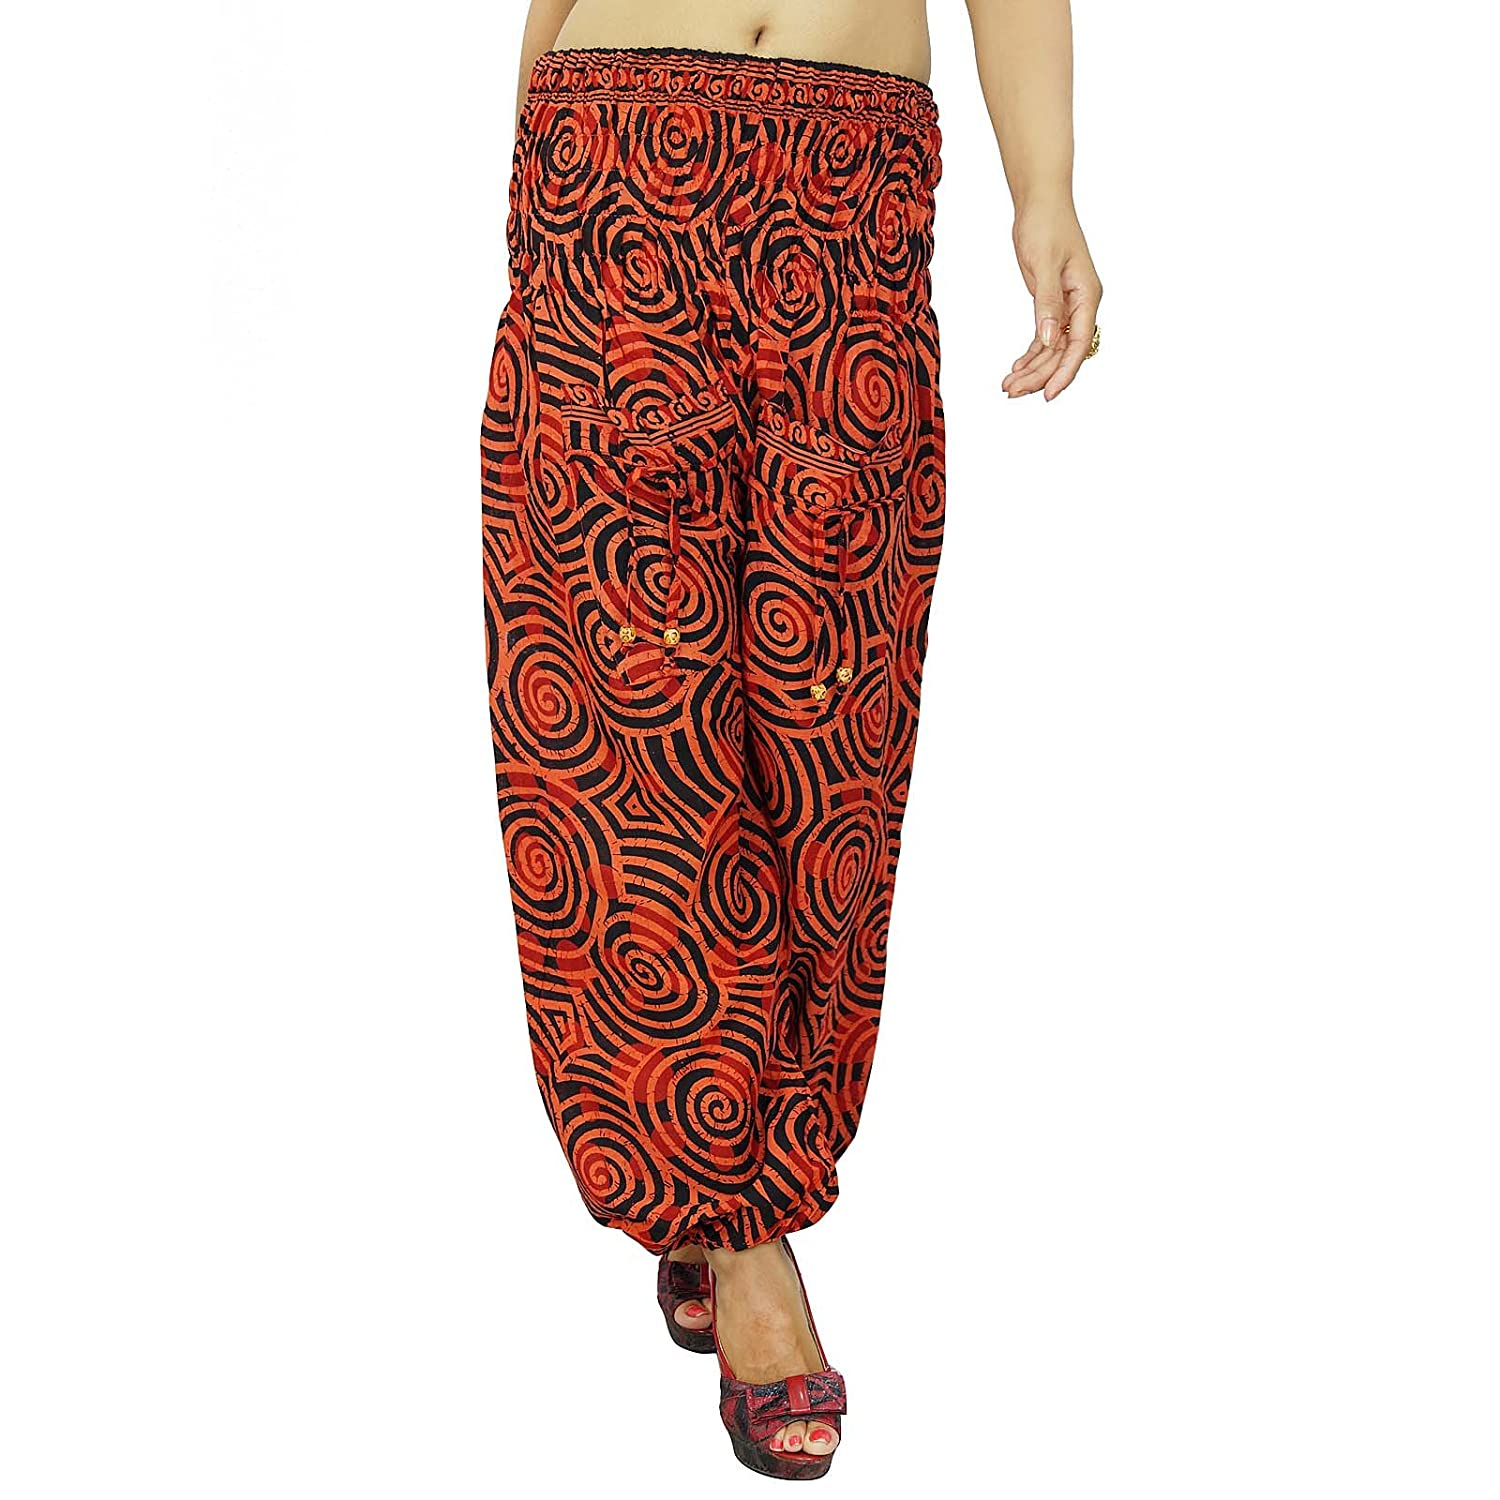 Orange Abstract Harem Gypsy Hosen Elastische Pants Mit Spiegel Pailletten